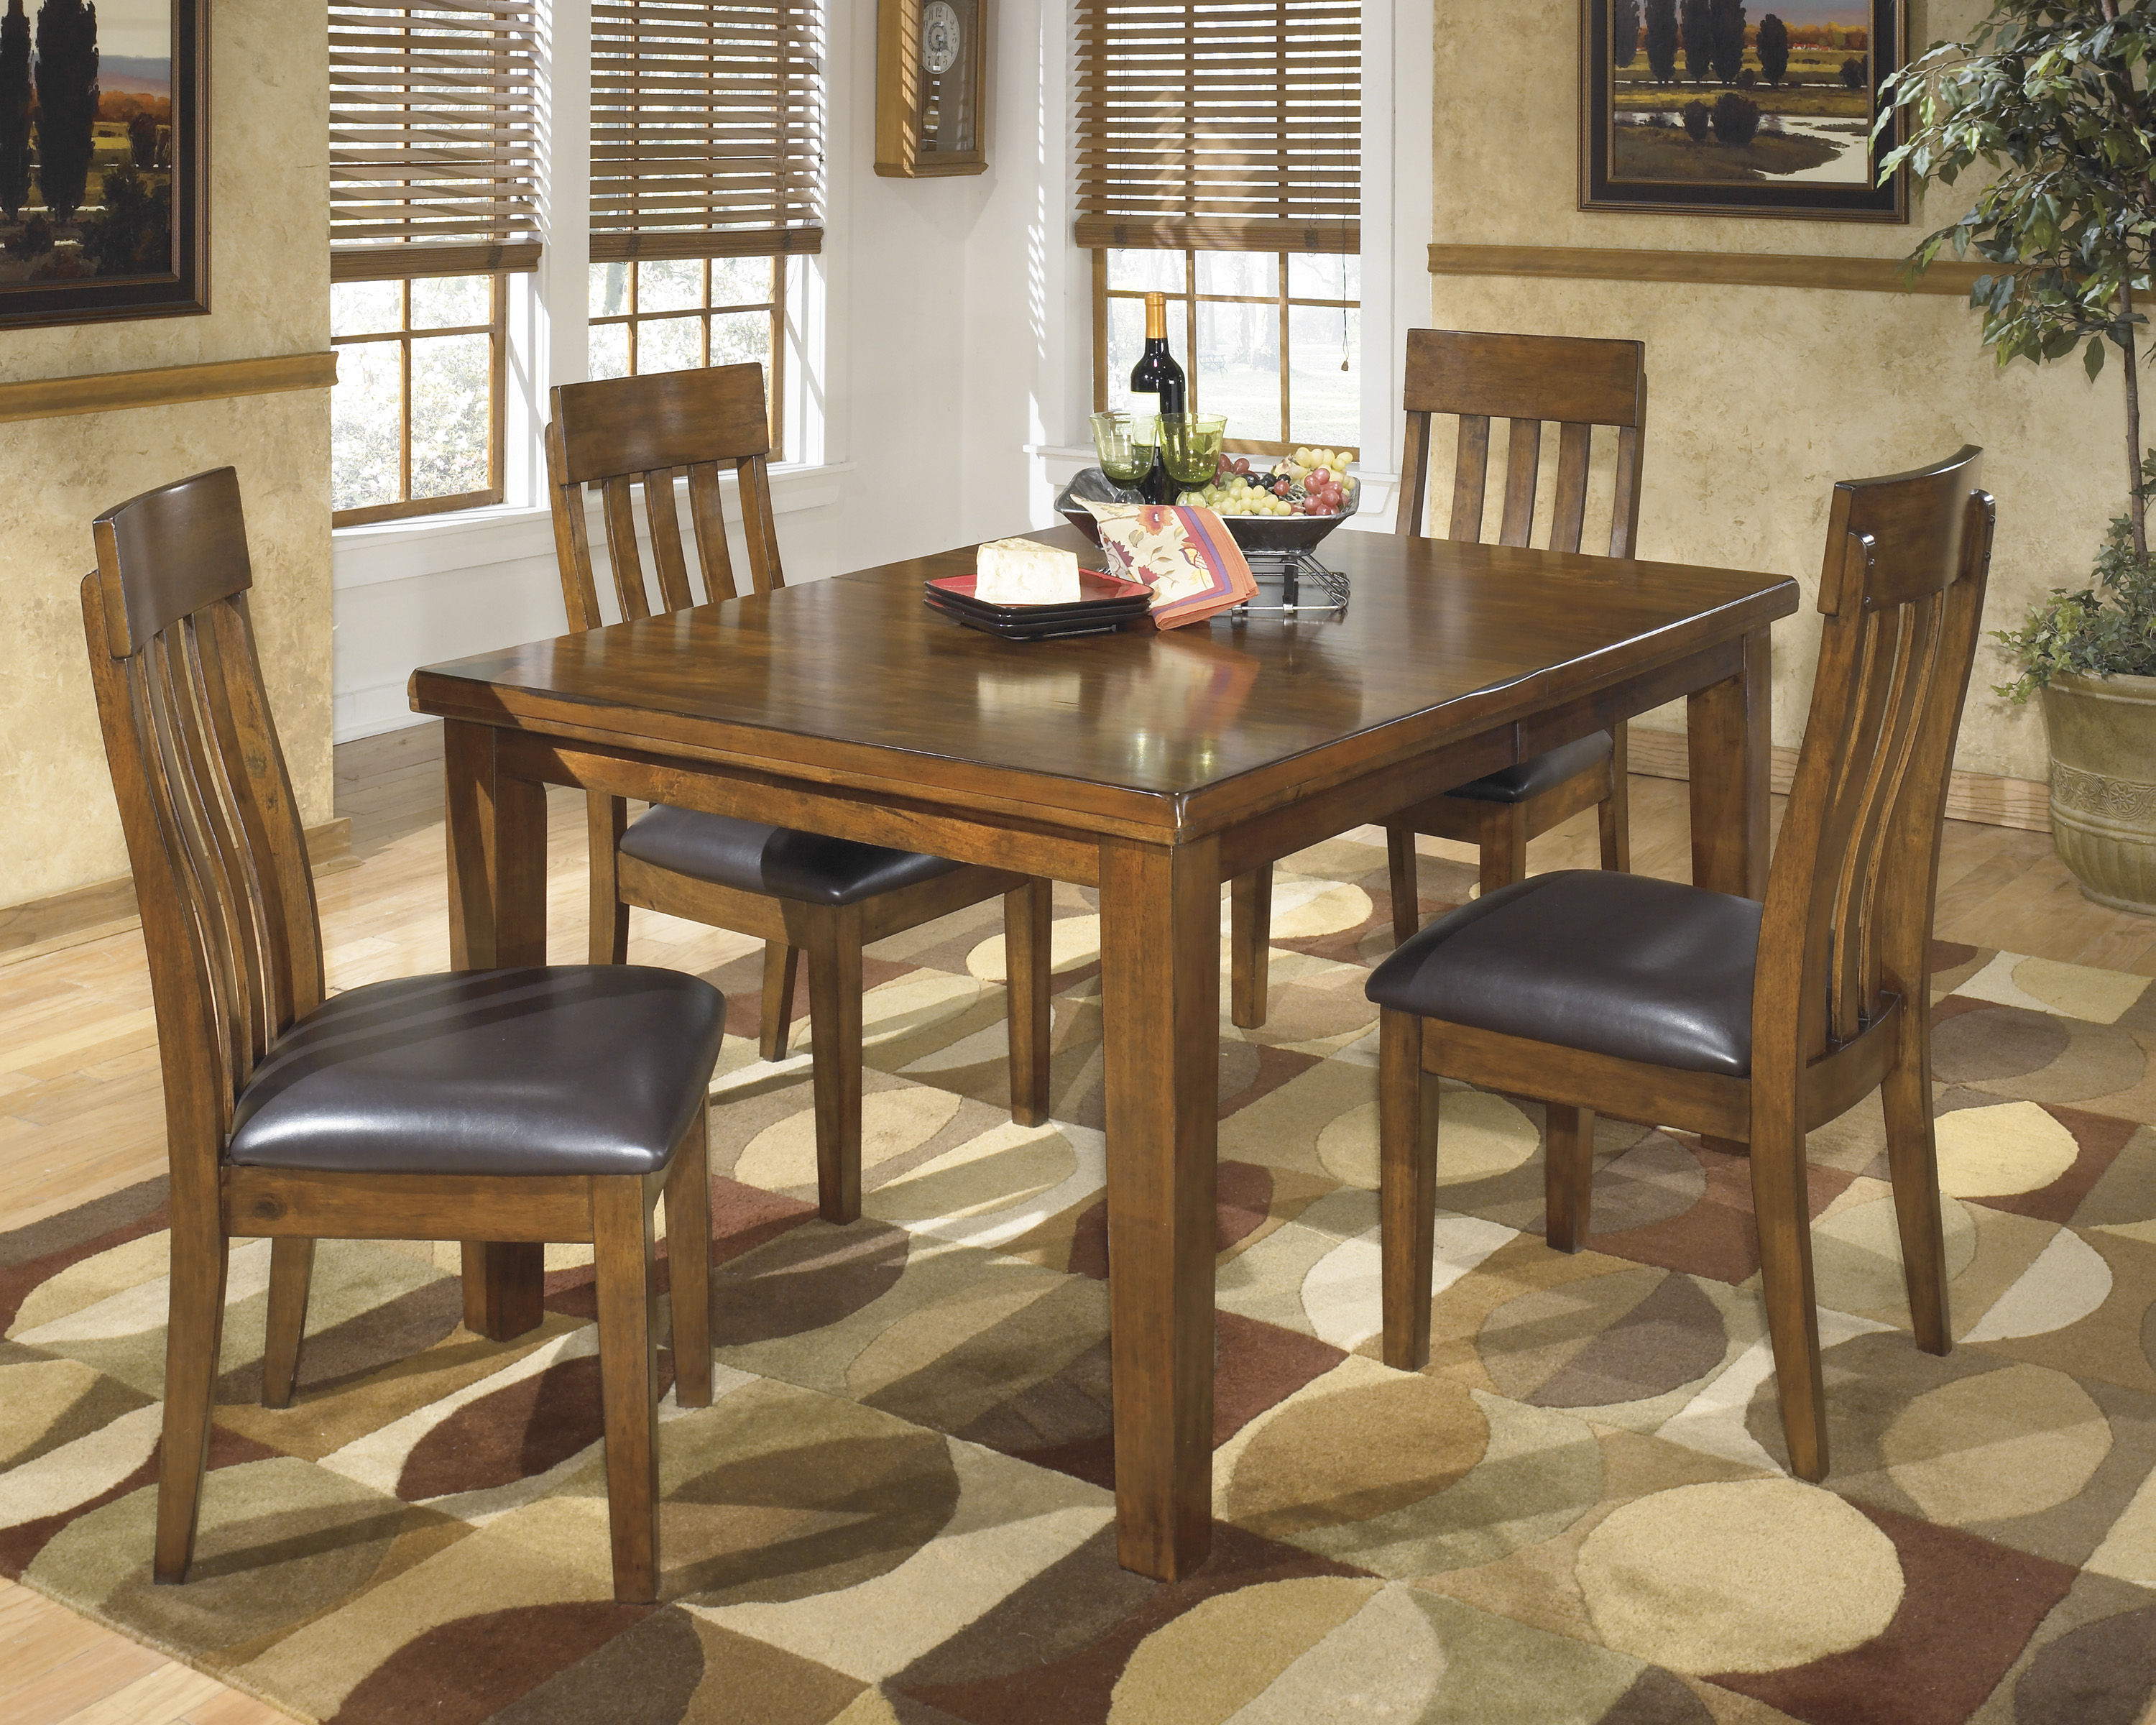 Ashley Furniture Ralene 5pc Dining Room Set The Classy Home